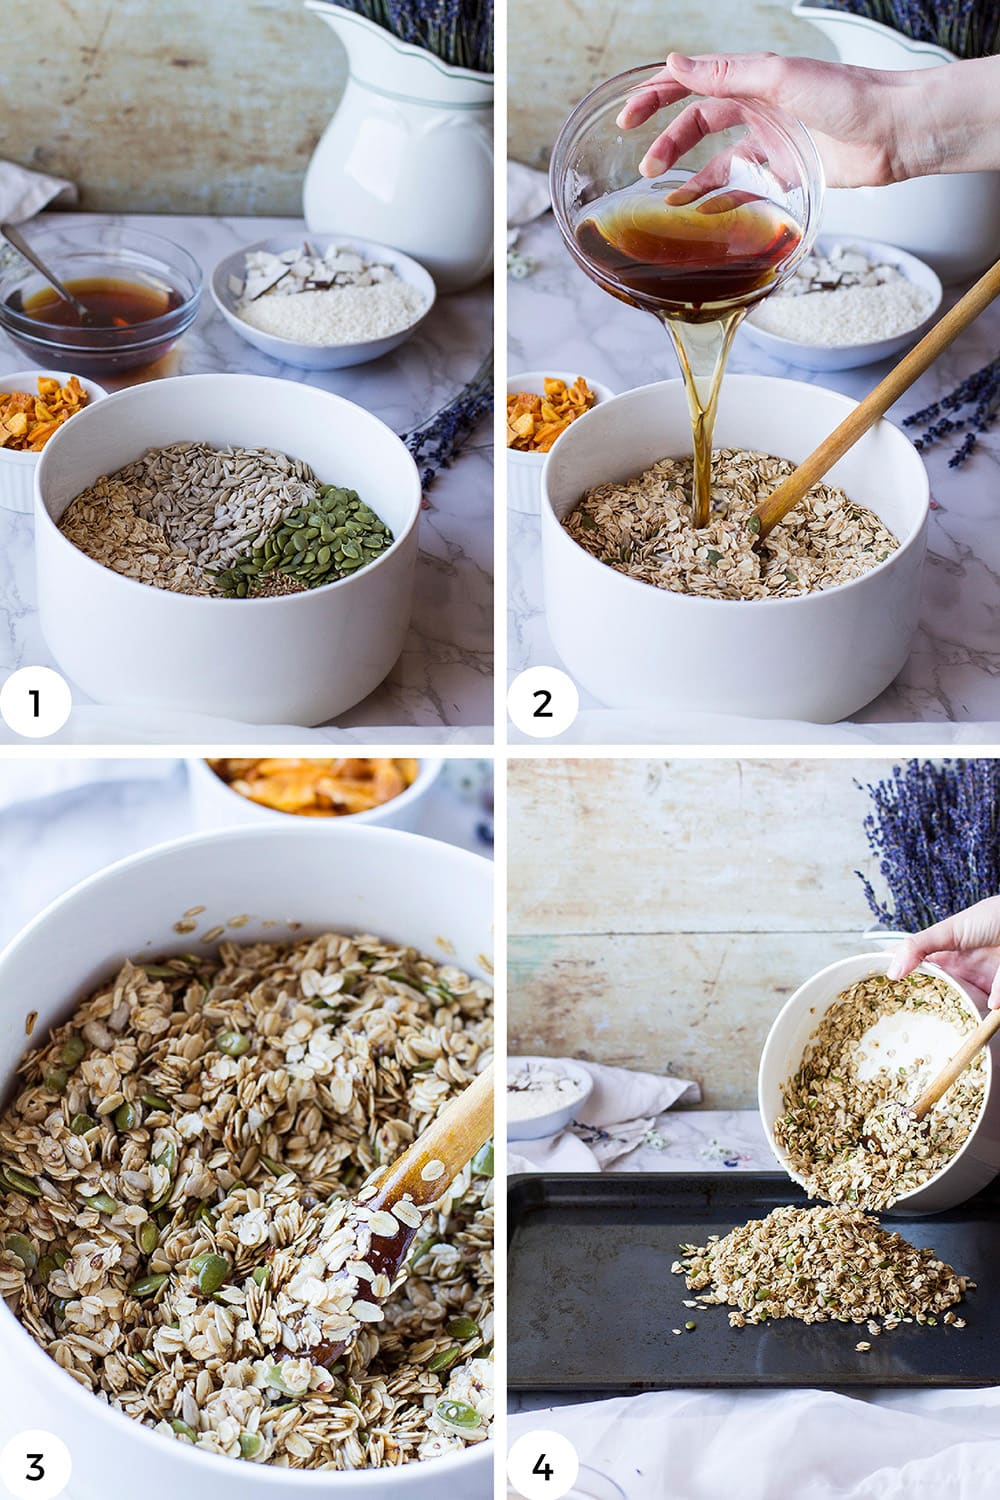 Steps to mix the granola.